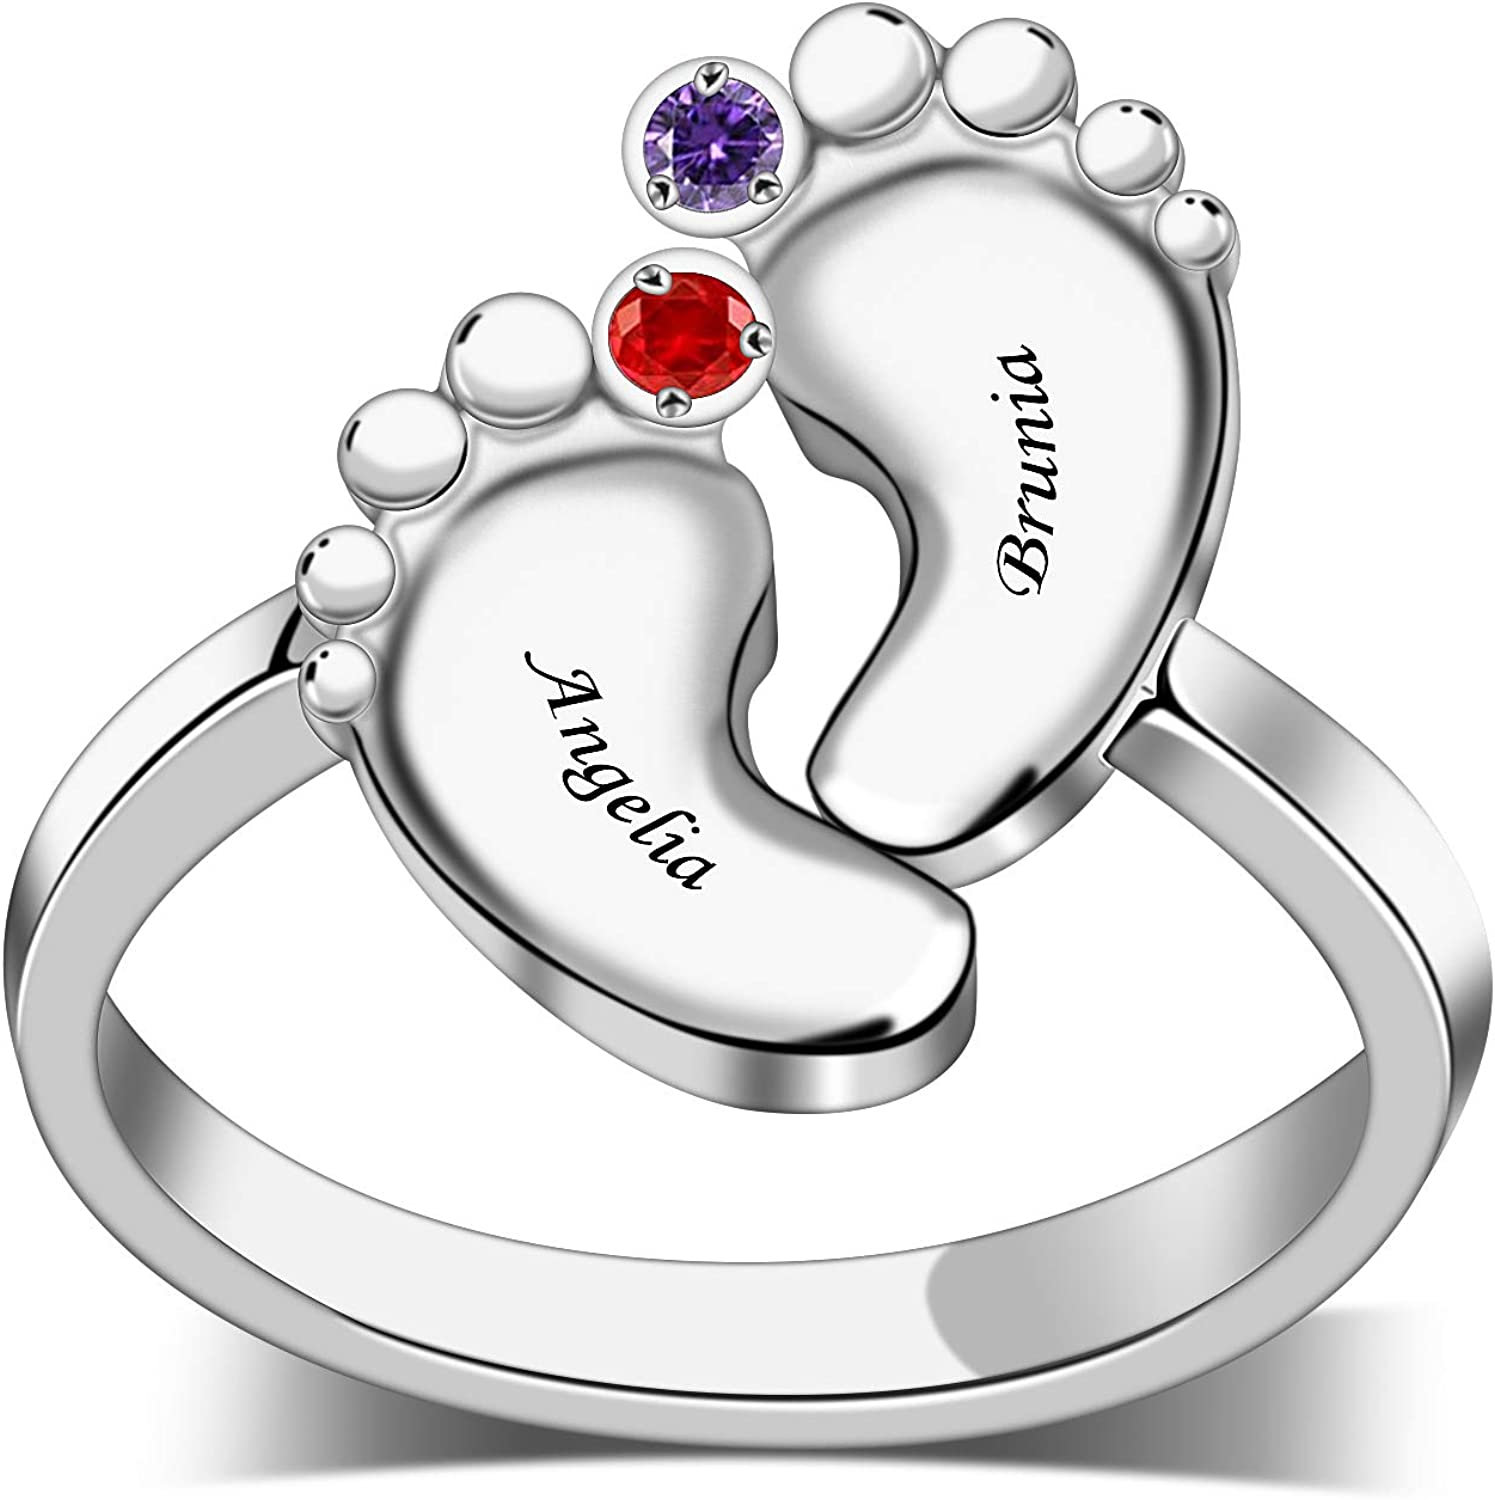 Personalized S925 MotherFamily Rings with 2 Cus Birthstones Bombing Cheap super special price free shipping can